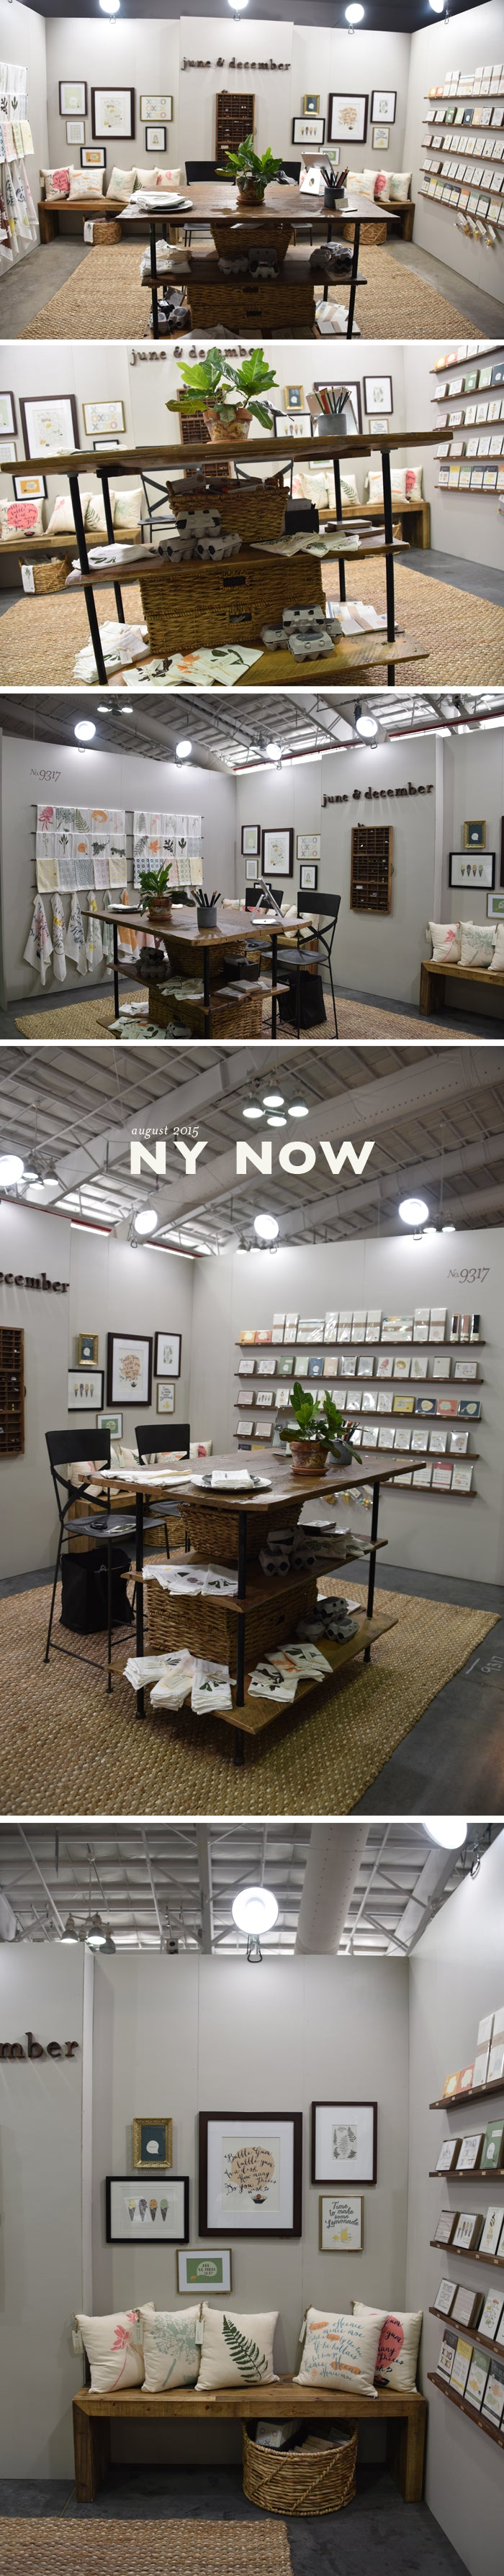 June & December NY NOW Summer 2015 Booth